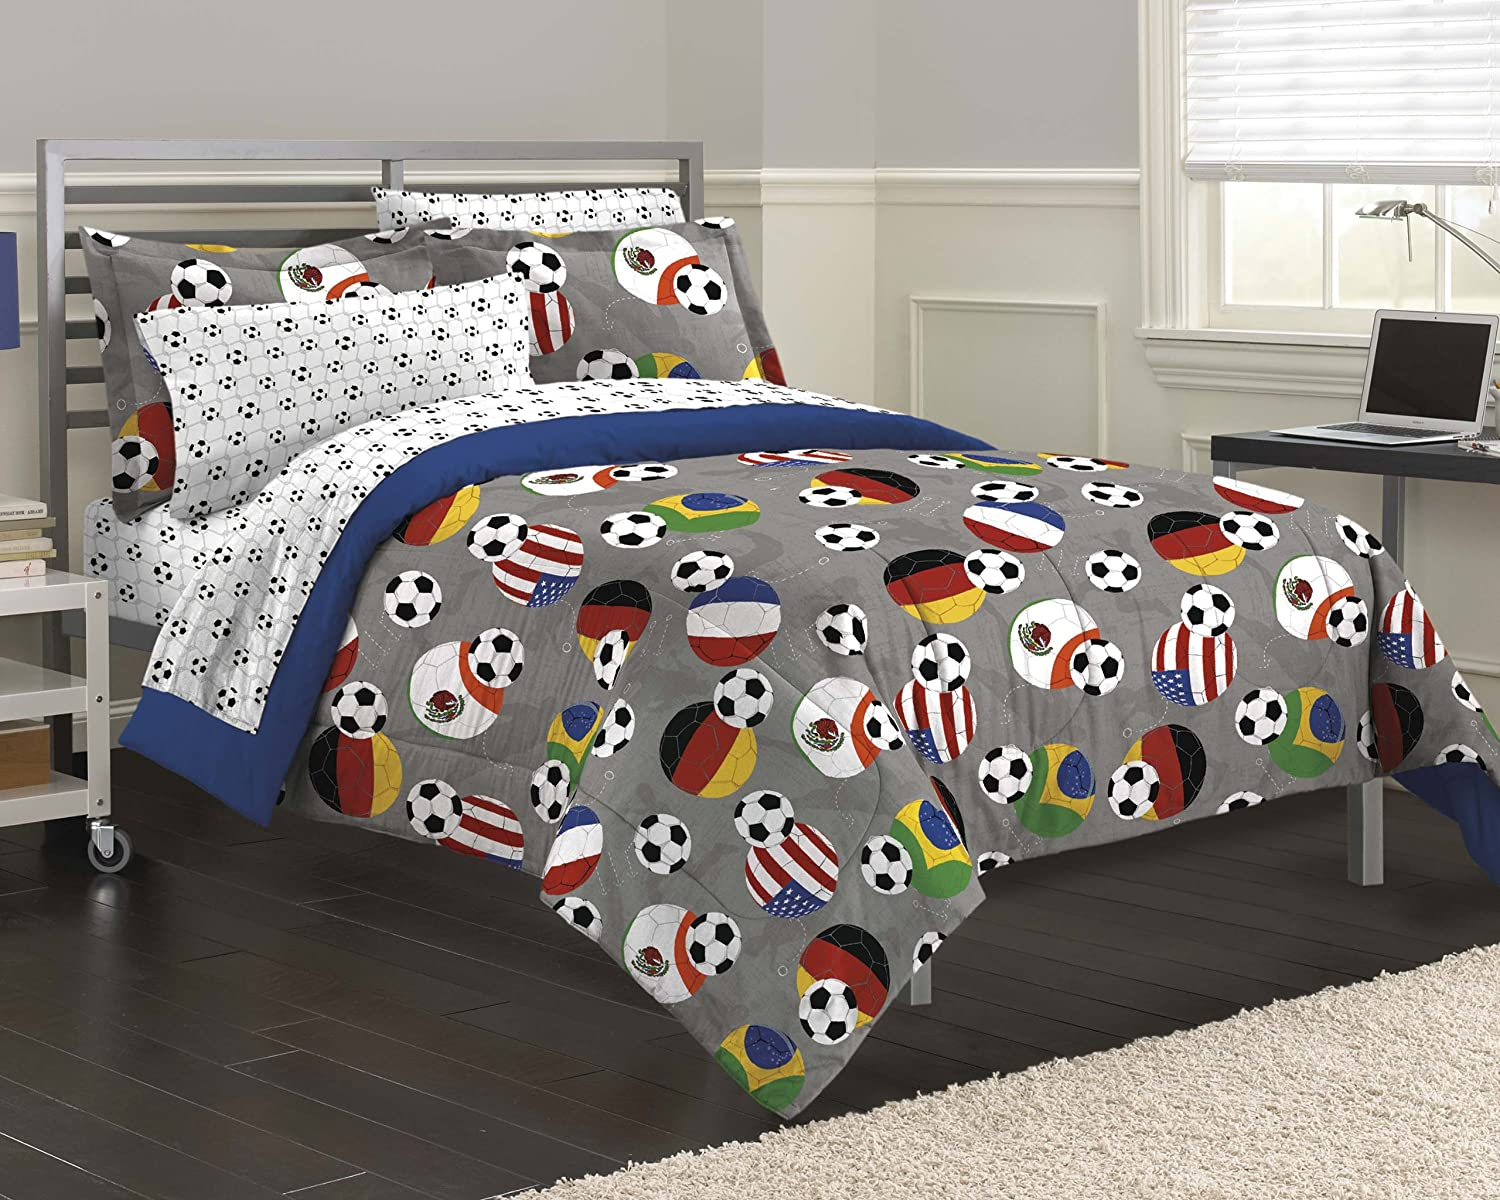 Amazoncom My Room Soccer Fever Teen Bedding Comforter Set Gray - Boys sports bedding sets twin